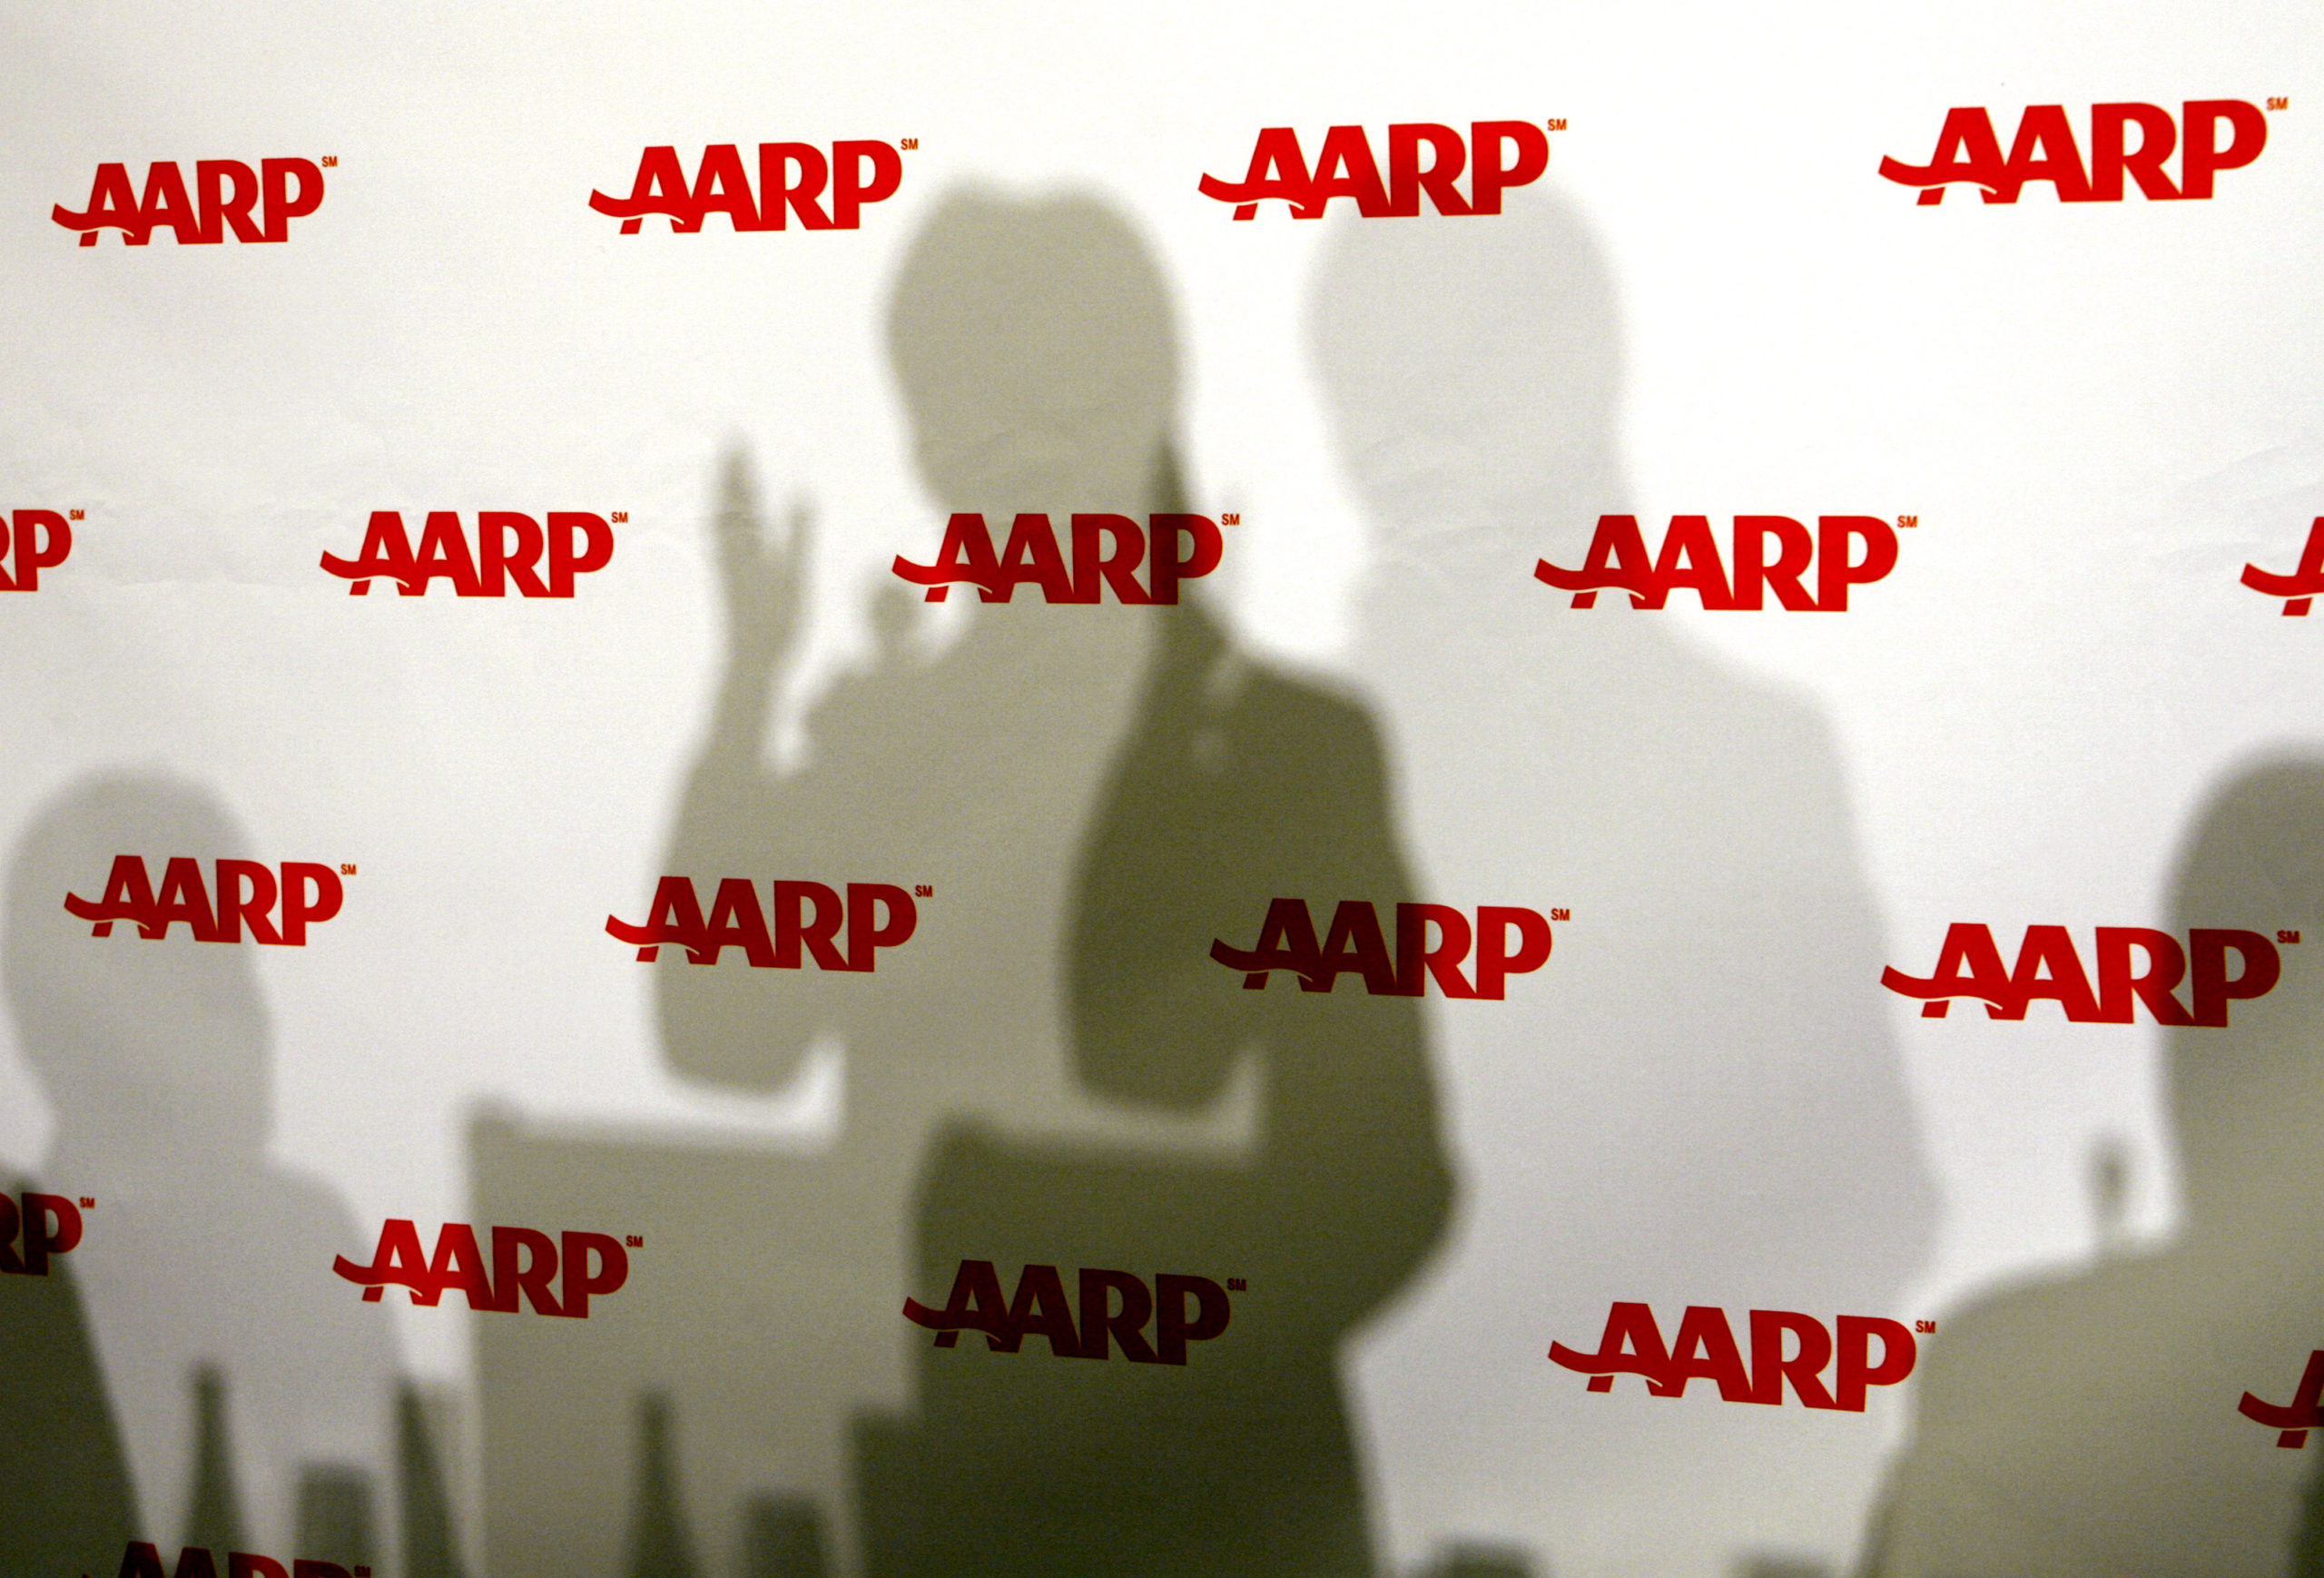 The shadow of U.S. Senator Hillary Clinton is seen as she speaks at the annual public policy meeting of AARP in Washington in 2007. (Kevin Lamarque/Reuters)